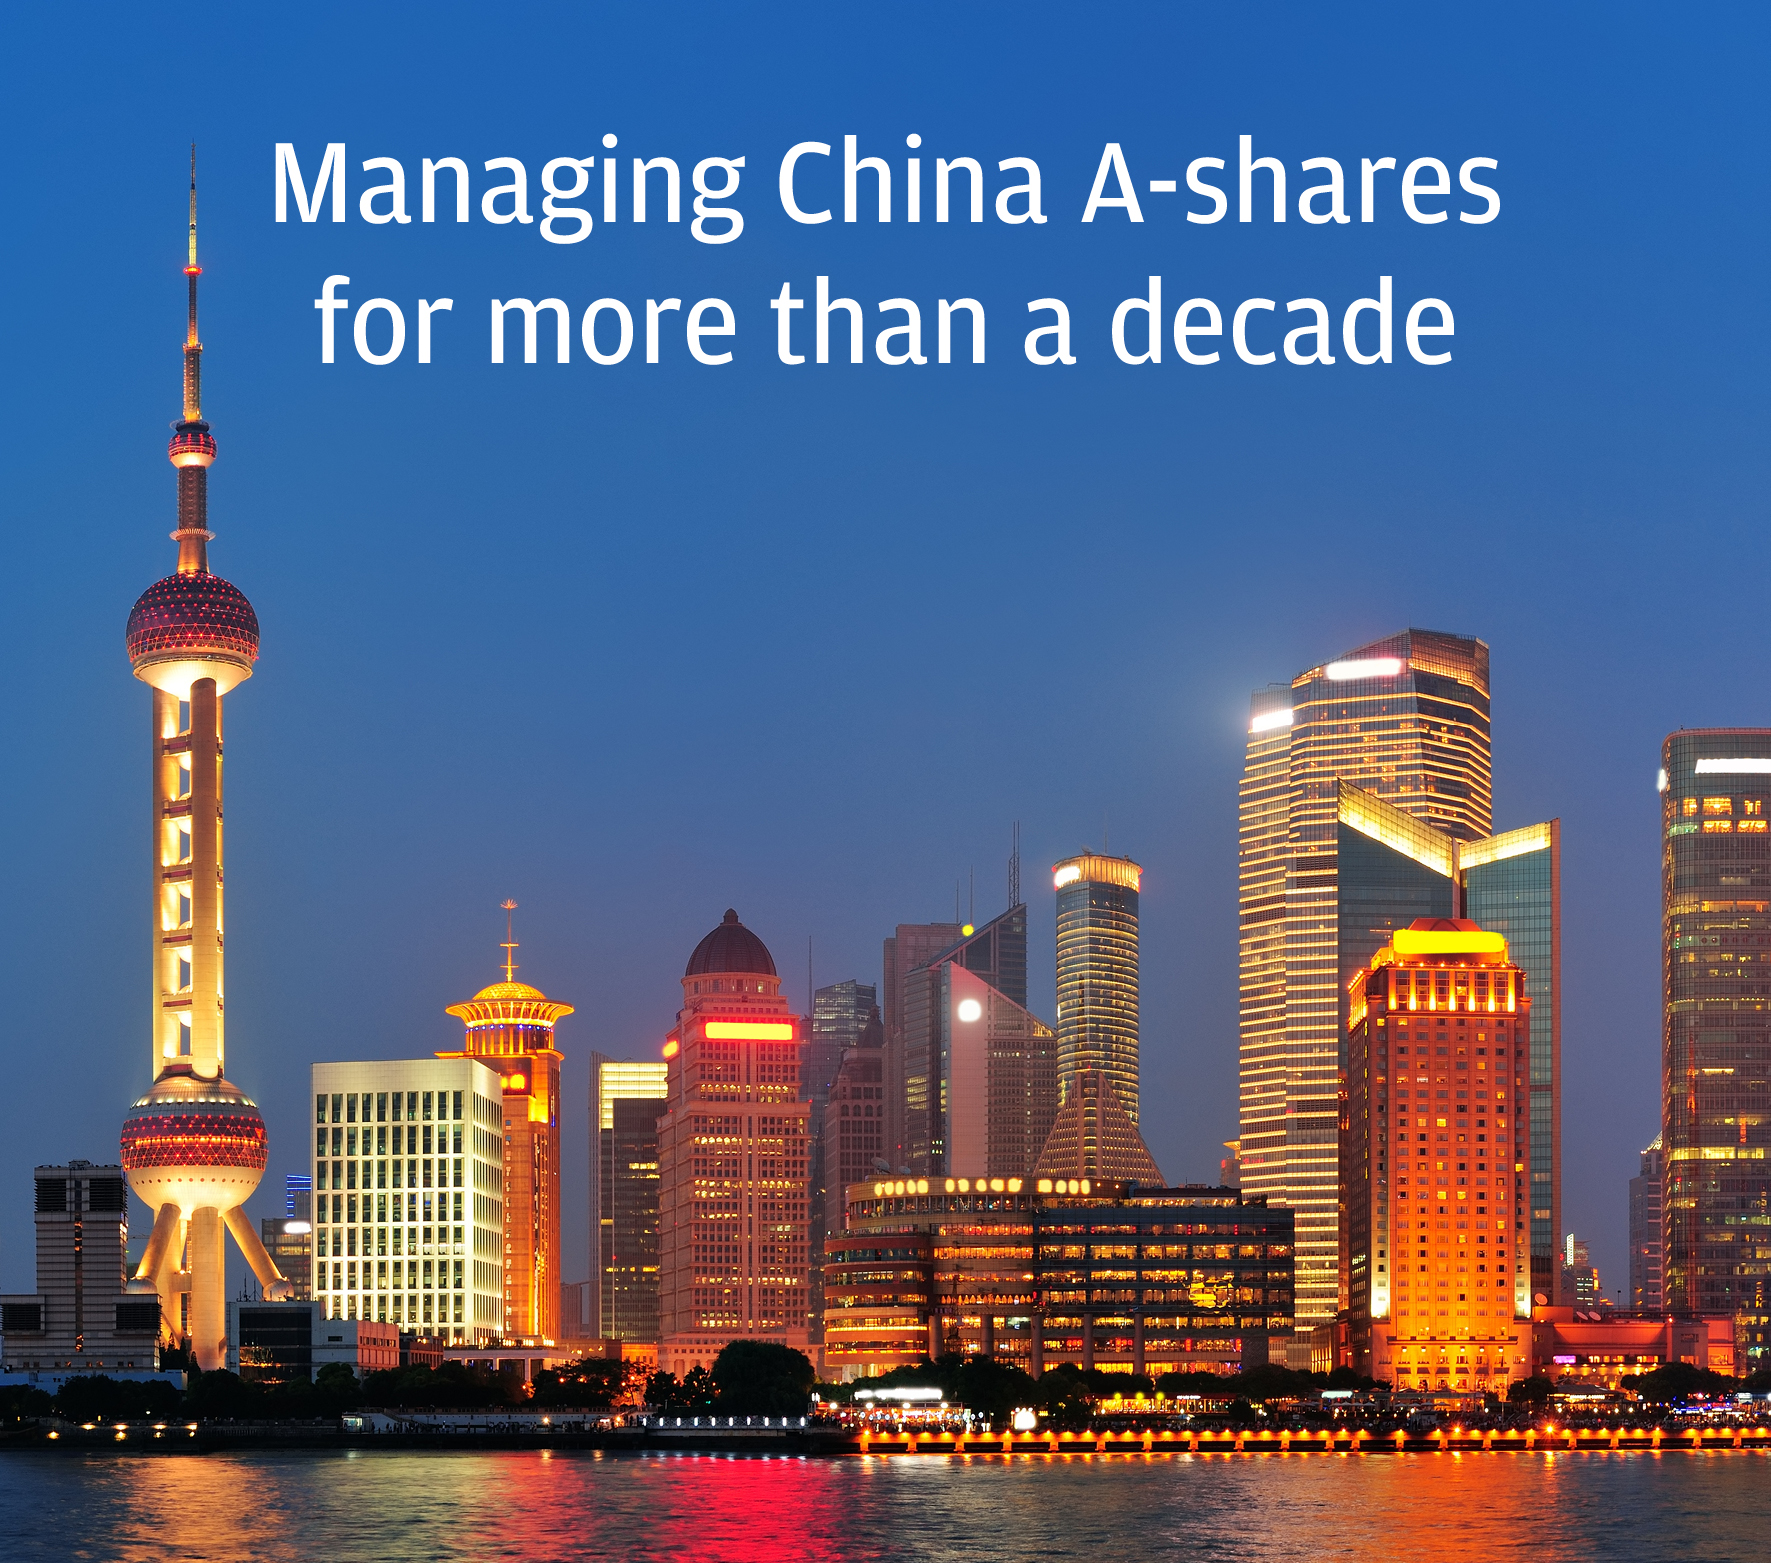 Managing China A-shares for more than a decade